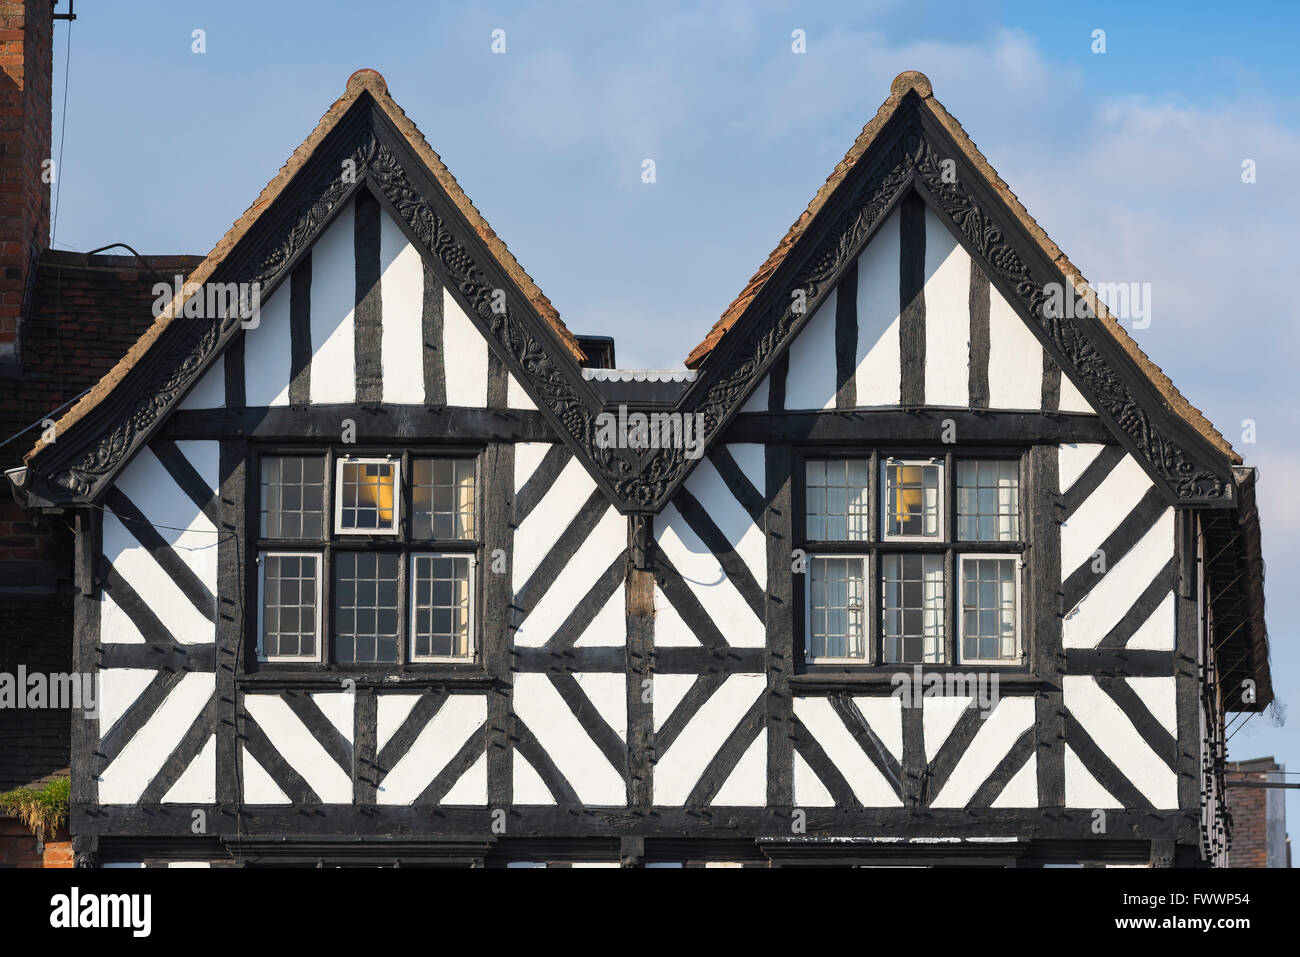 Detail of a typical medieval half-timbered building in the centre of Stratford Upon Avon, England. Stock Photo